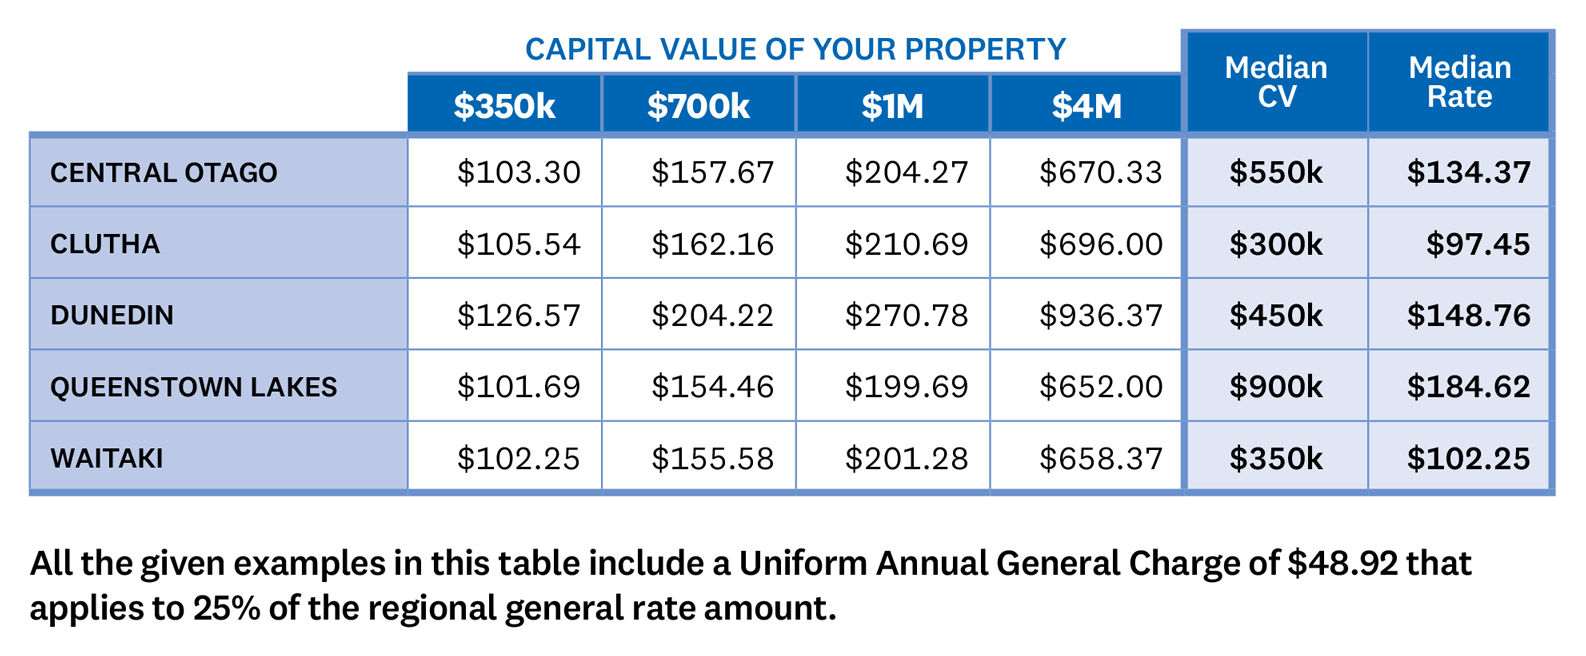 TABLE Under Option 1, a property in Central Otago with a capital value of $350,000 would pay general rates of $103.30, a capital value of $700,000 would pay $157.67, a capital value of $1,000,000 would pay $204.27, and a capital value of $4,000,000 would pay $670.33. The median capital value in Central Otago is $550,000 which gives a median rate of $134.37. In Clutha a property with a capital value of $350,000 would pay general rates of $105.54, a capital value of $700,000 would pay $162.16, a capital value of $1,000,000 would pay $210.69, and a capital value of $4,000,000 would pay $696.00. The median capital value in Clutha is $300,000 which gives a median rate of $97.45. In Dunedin a property with a capital value of $350,000 would pay general rates of $126.57, a capital value of $700,000 would pay $204.22, a capital value of $1,000,000 would pay $270.78, and a capital value of $4,000,000 would pay $936.37. The median capital value in Dunedin is $450,000 which gives a median rate of $148.76. In Queenstown Lakes a property with a capital value of $350,000 would pay general rates of $101.69, a capital value of $700,000 would pay $154.46, a capital value of $1,000,000 would pay $199.69, and a capital value of $4,000,000 would pay $652.00. The median capital value in Queenstown Lakes is $900,000 which gives a median rate of $184.62. In Waitaki a property with a capital value of $350,000 would pay general rates of $102.25, a capital value of $700,000 would pay $155.58, a capital value of $1,000,000 would pay $201.28, and a capital value of $4,000,000 would pay $658.37. The median capital value in Waitaki is $350,000 which gives a median rate of $102.25.